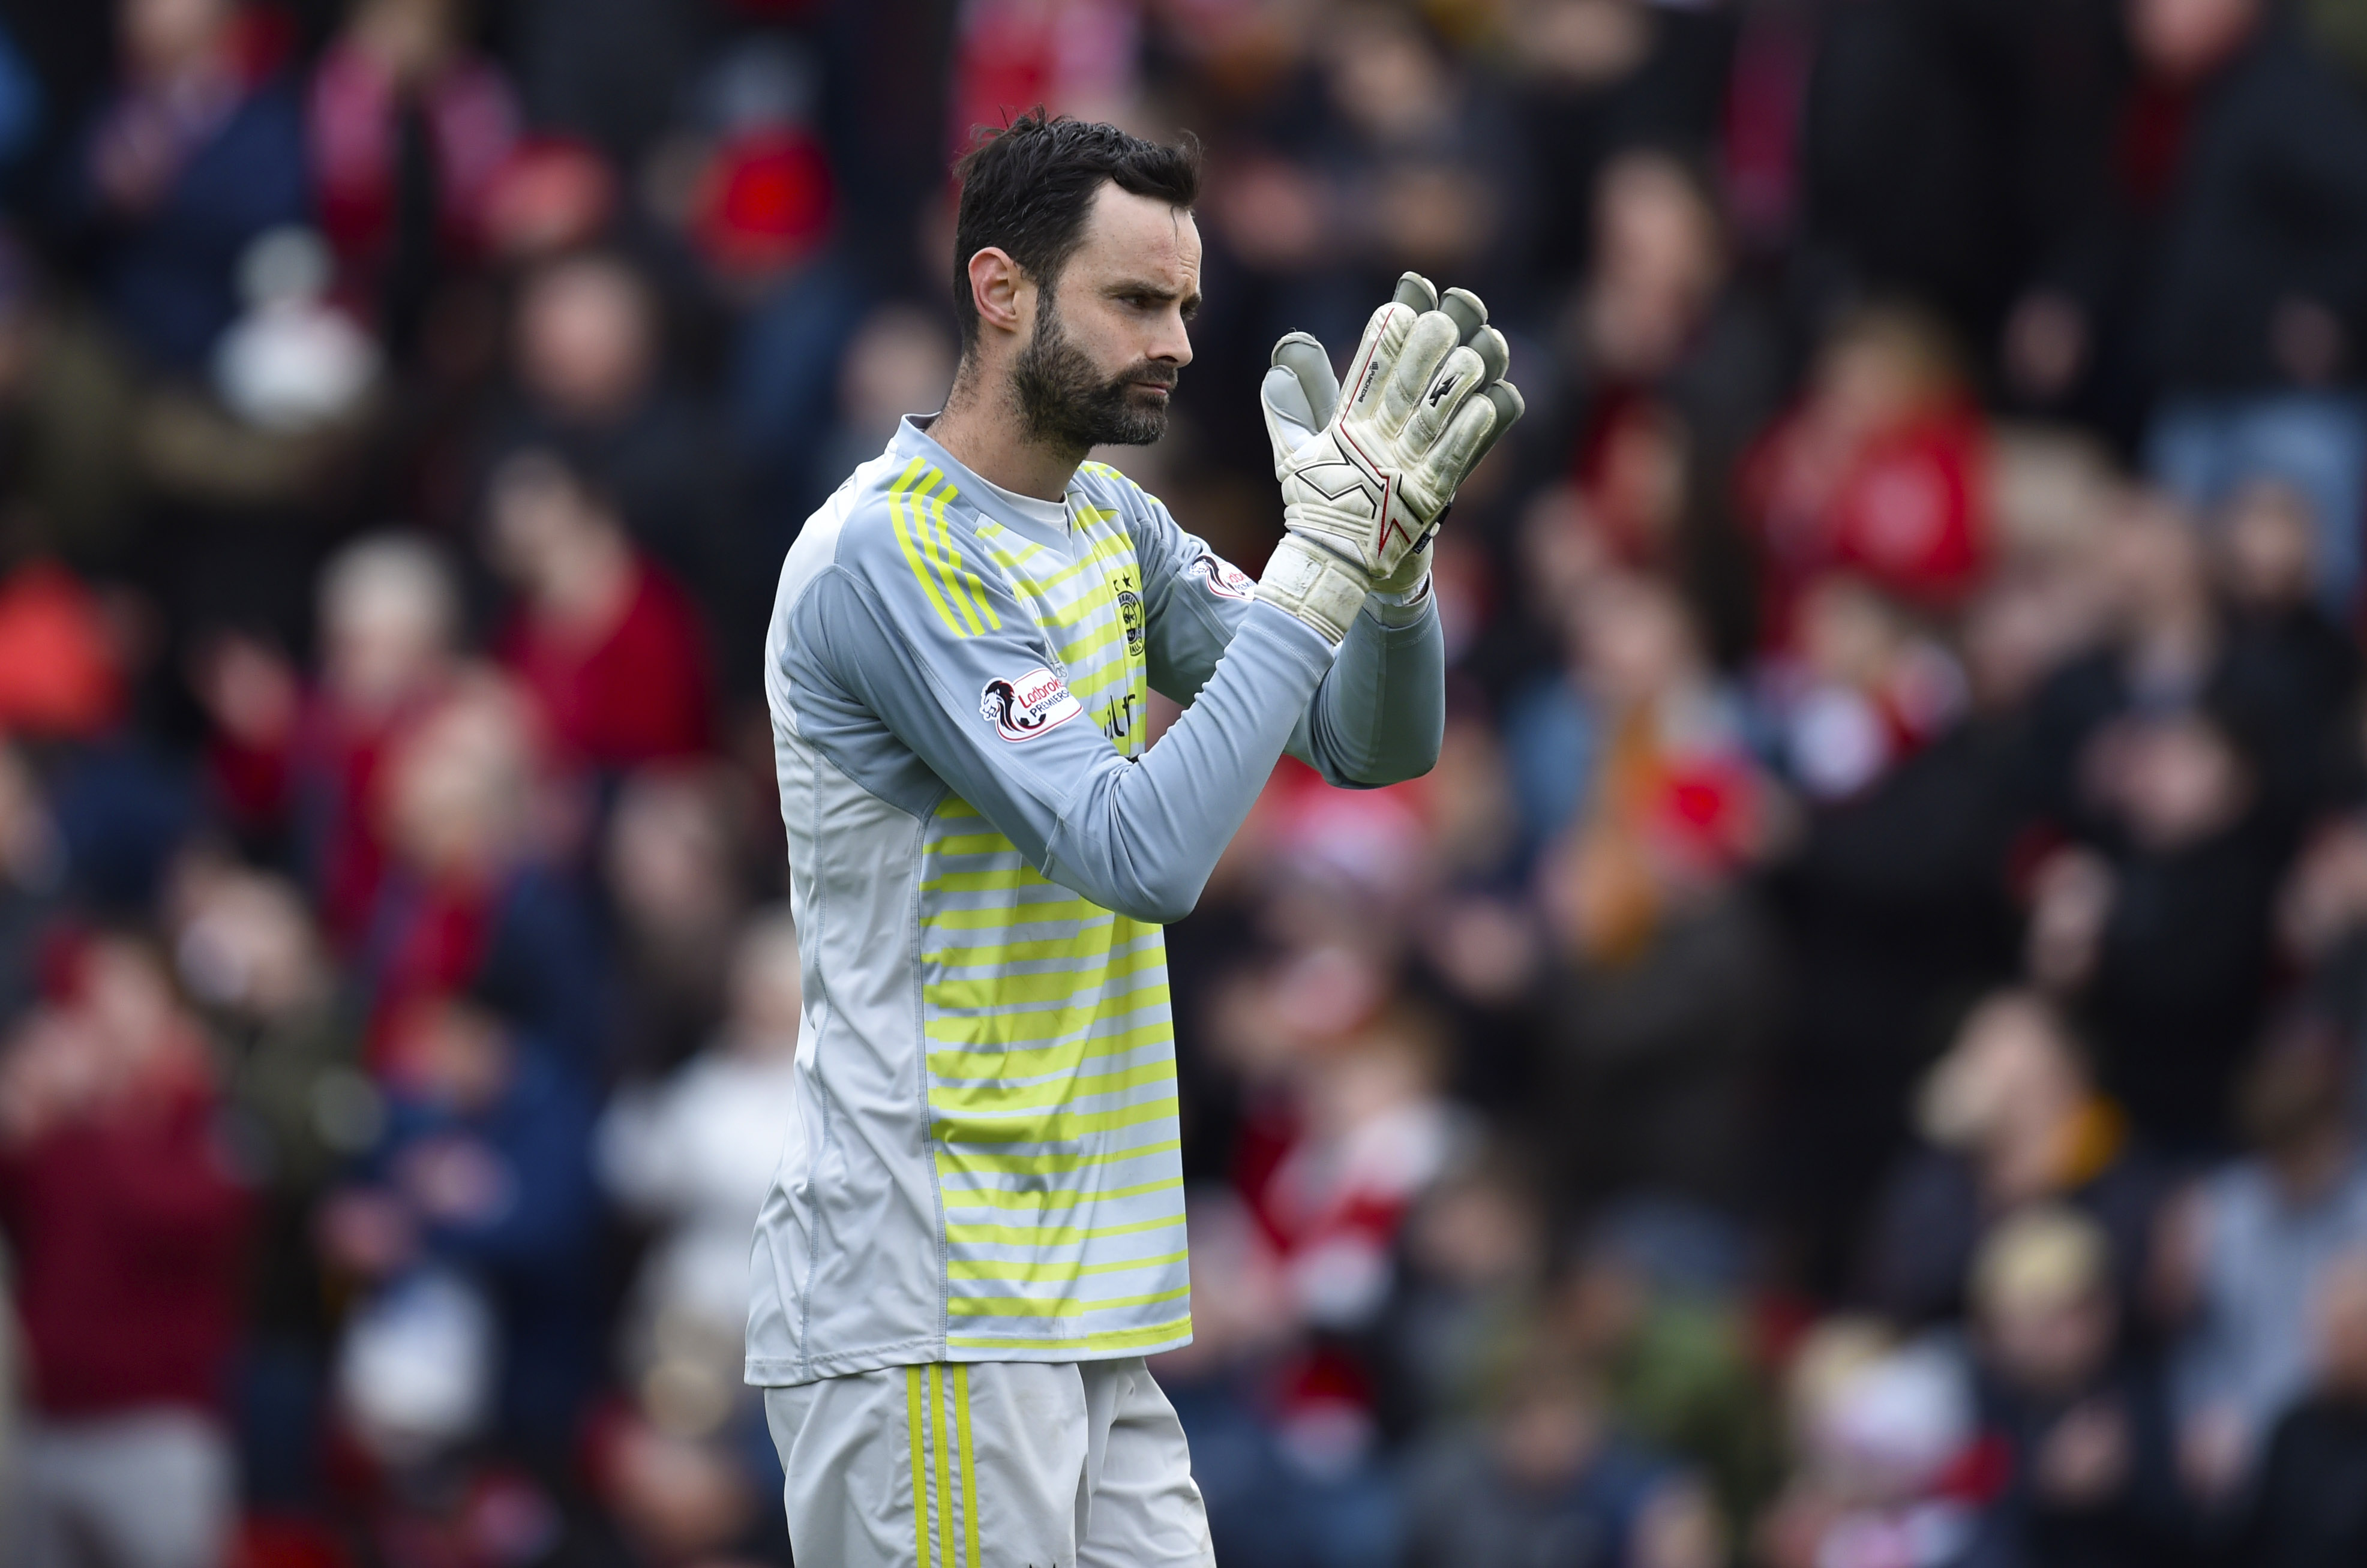 Joe Lewis has yet to win a trophy with the Dons.